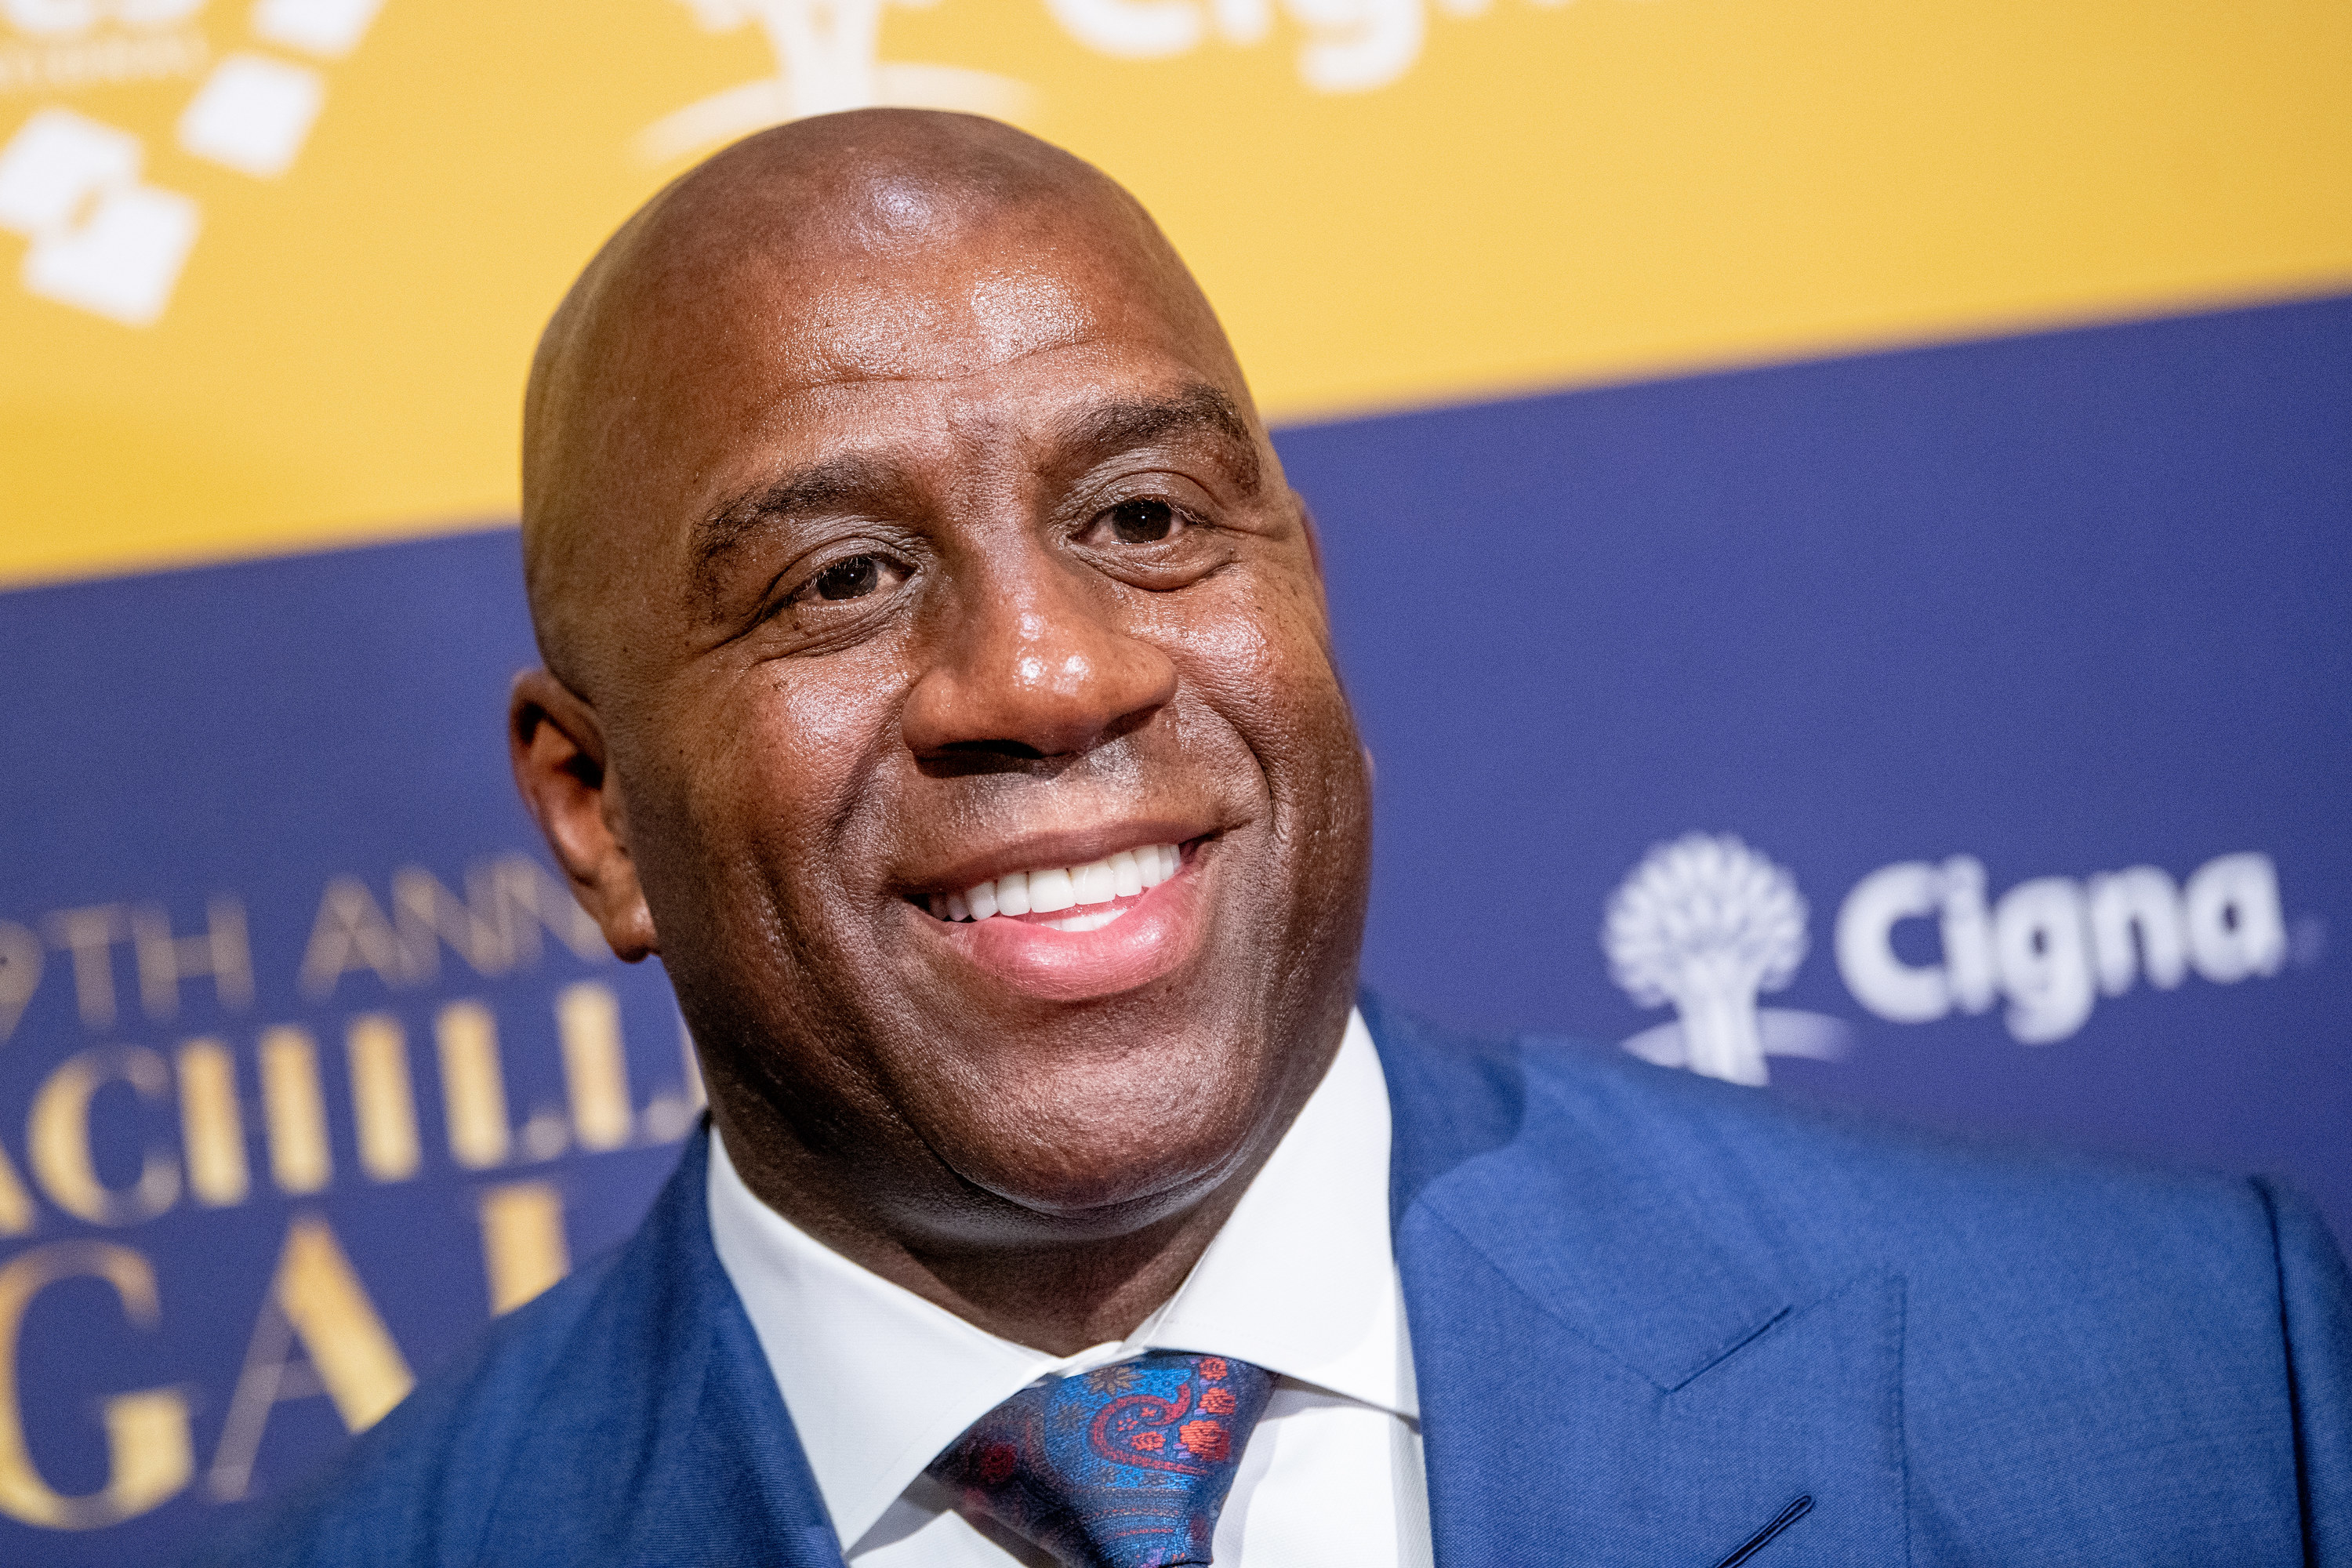 A smiling Magic Johnson in a suit and tie